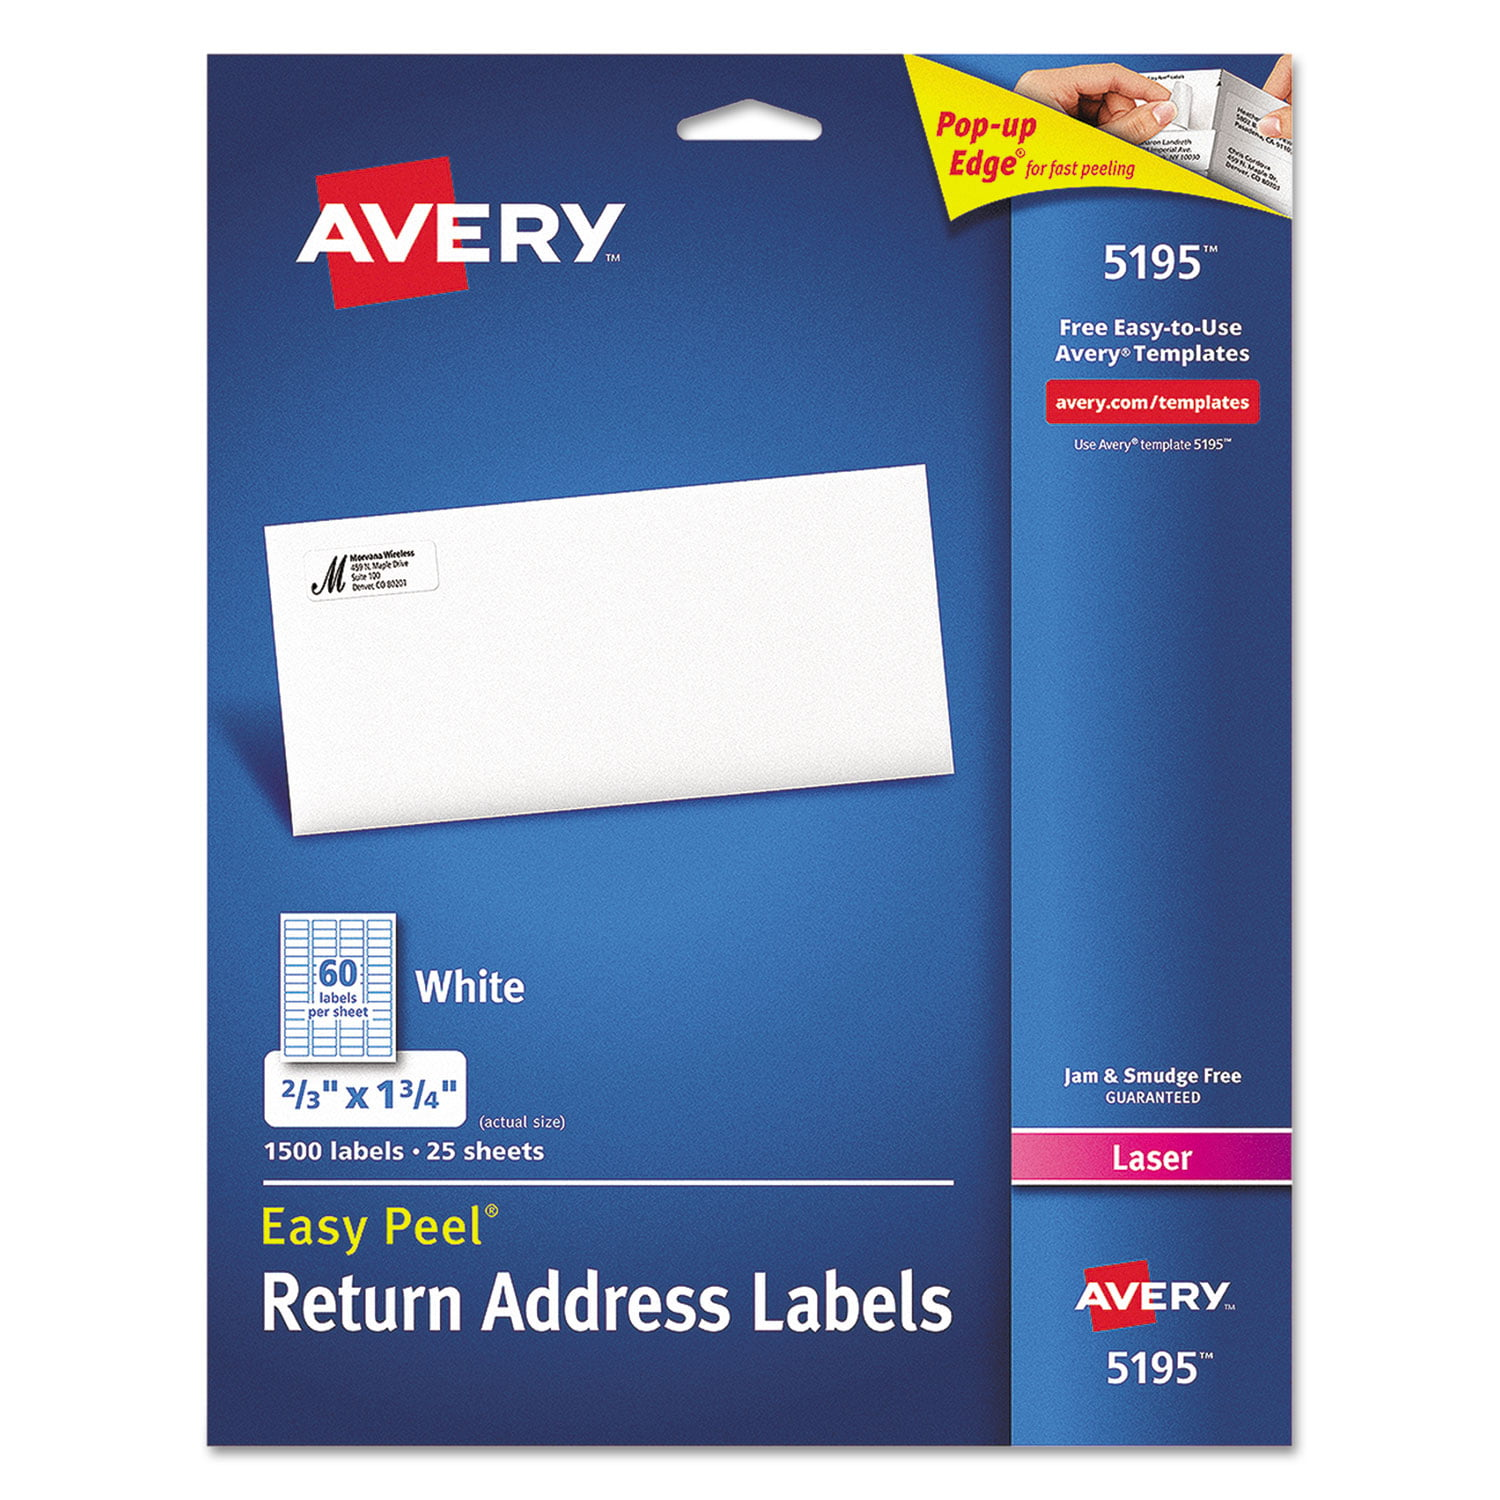 Averyr ecofriendly address labels 48860 1 x 2 58 pack of 300 averyr ecofriendly address labels 48860 1 x 2 58 pack of 300 walmart reheart Image collections